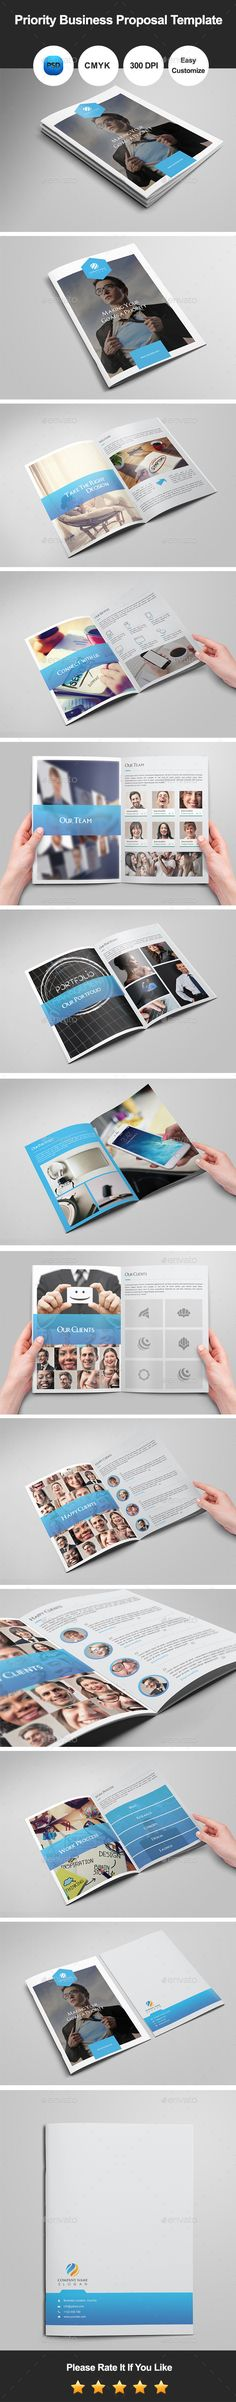 event sponsor proposal%0A Advertising Proposal Template  business proposal template iii proposal  templates  business  facebook marketing and advertising proposal facebook  marketing